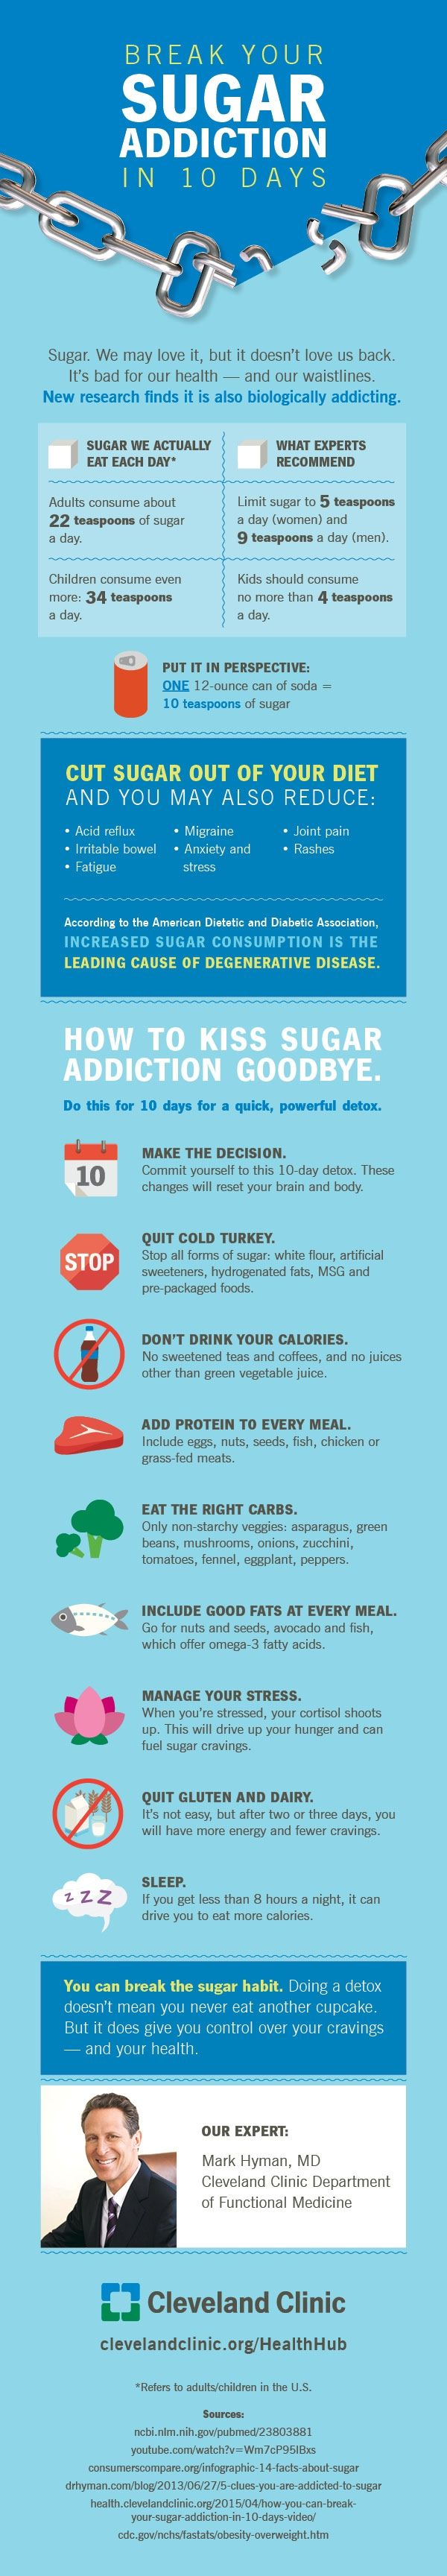 how to break your sugar addiction in 10 days